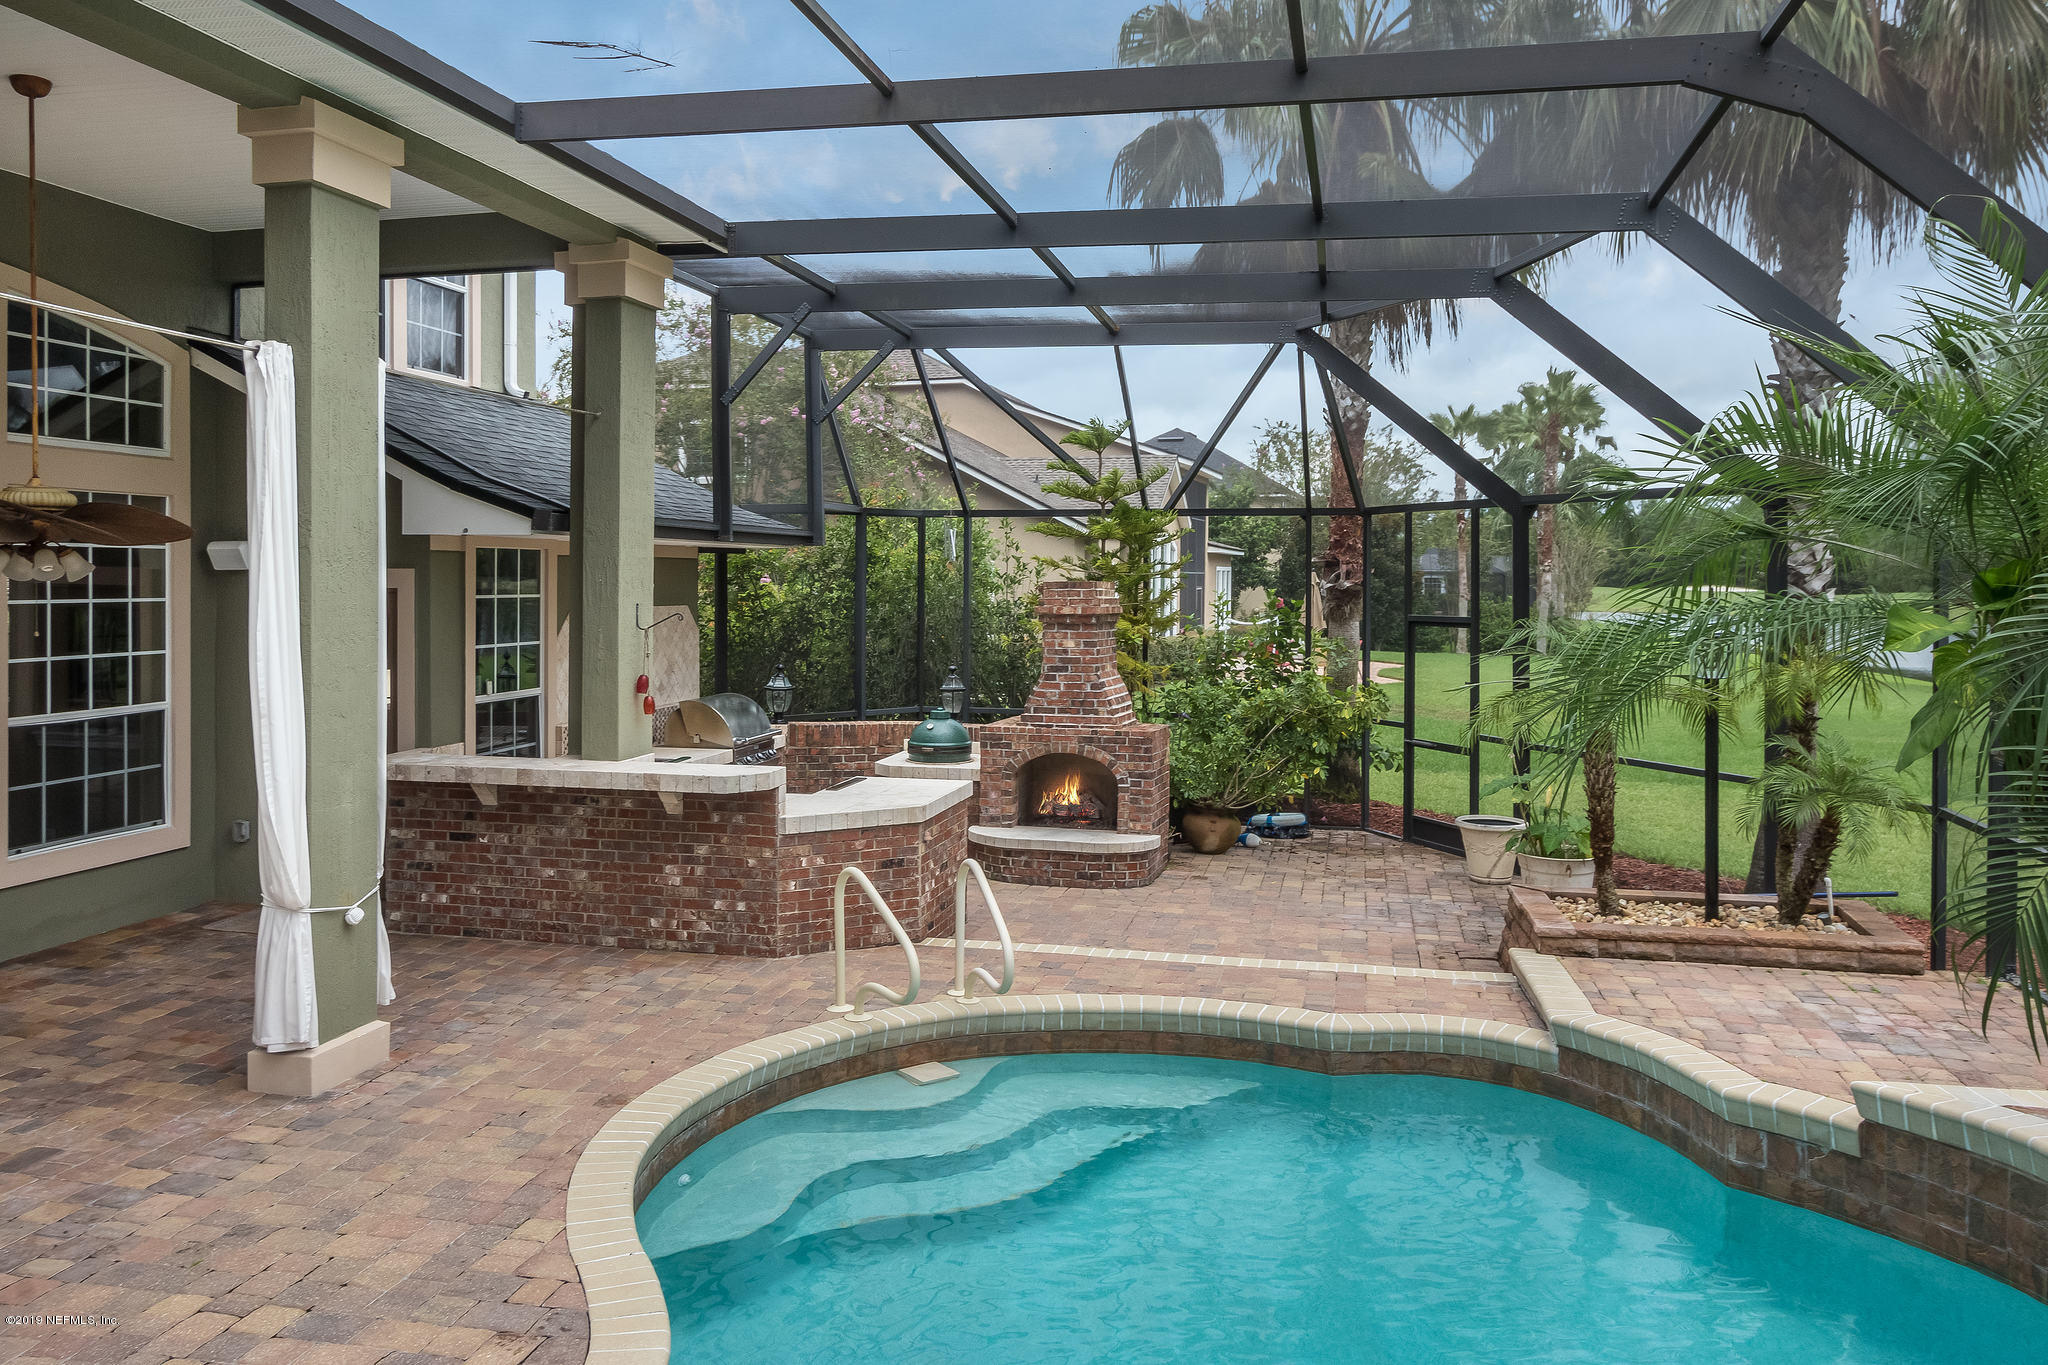 284 ST JOHNS GOLF, ST AUGUSTINE, FLORIDA 32092, 5 Bedrooms Bedrooms, ,4 BathroomsBathrooms,Residential - single family,For sale,ST JOHNS GOLF,1013716